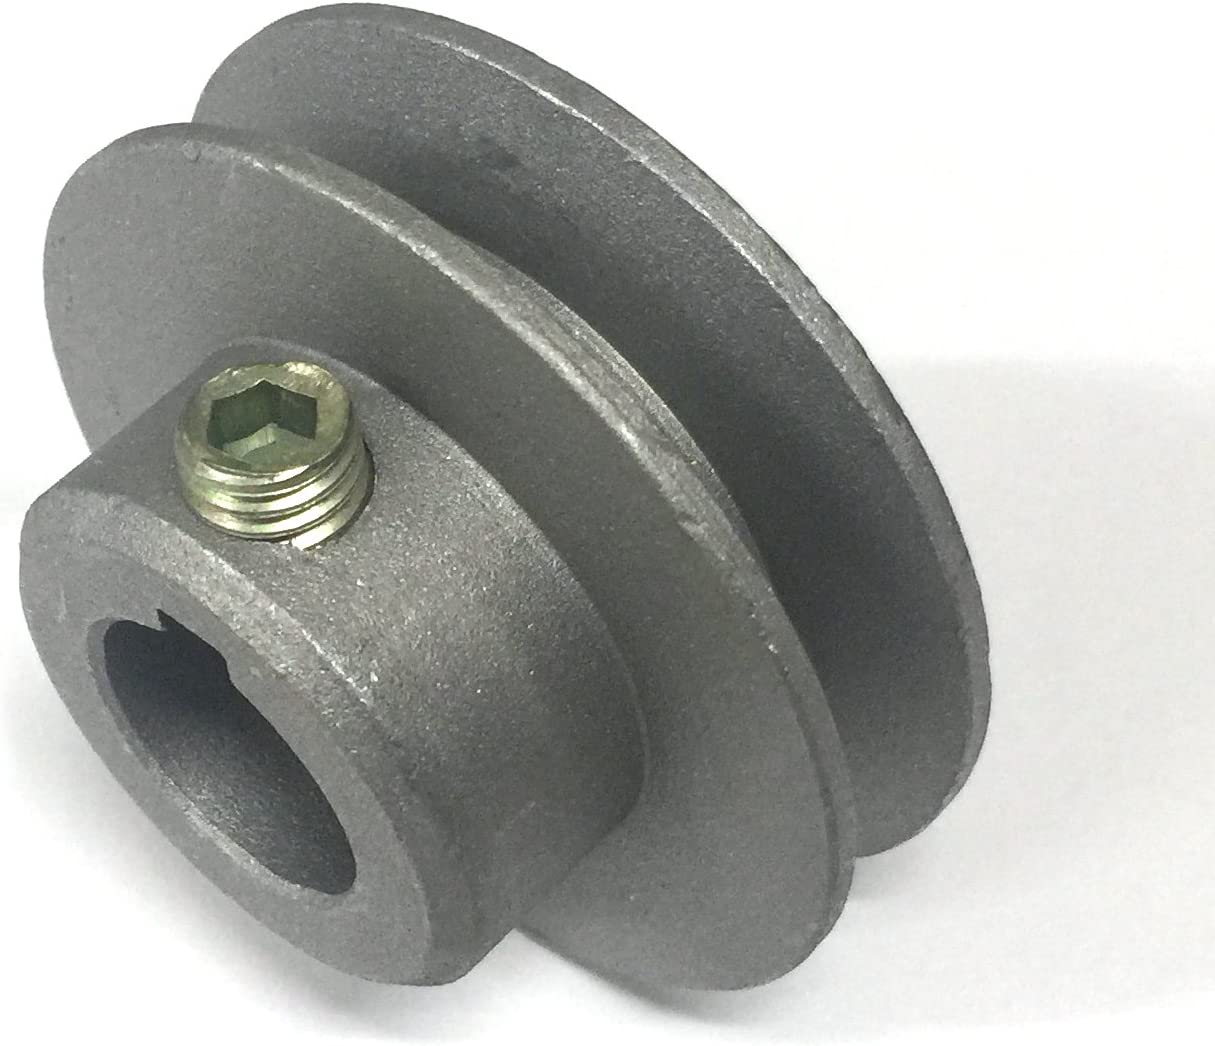 Pulley in 4 Different Sizes